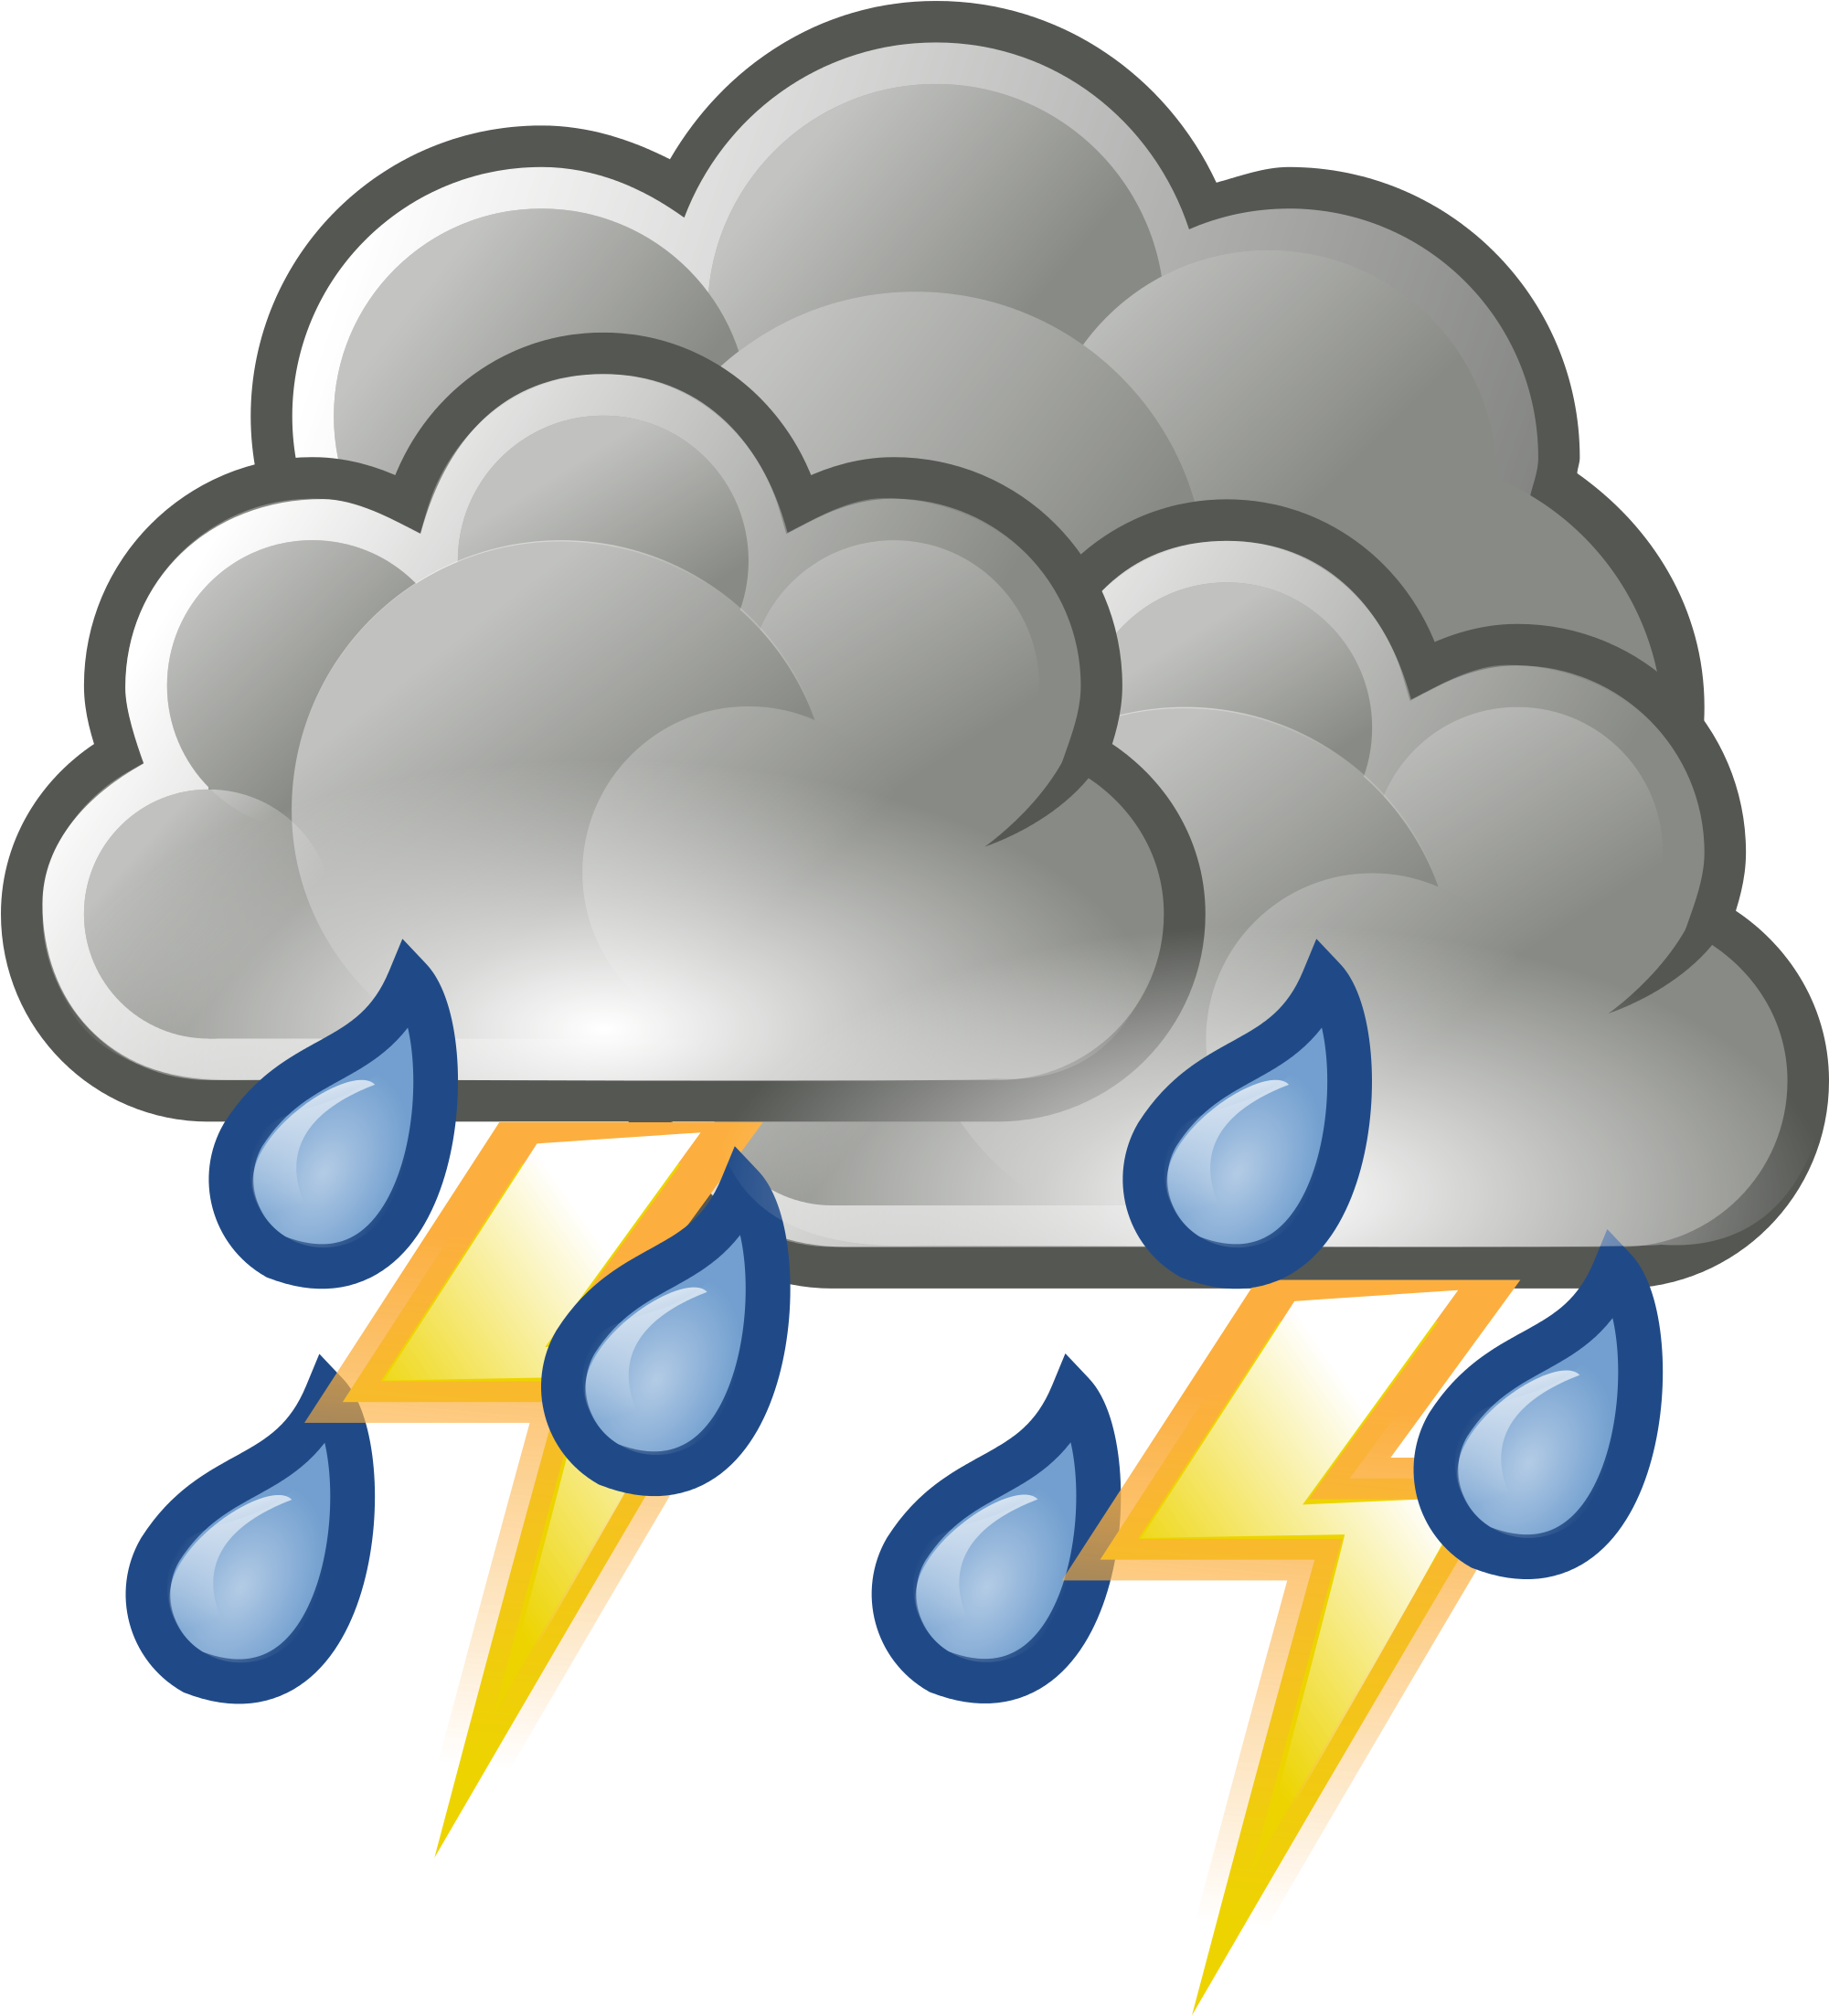 Thunderstorm clipart. Download file weather rain